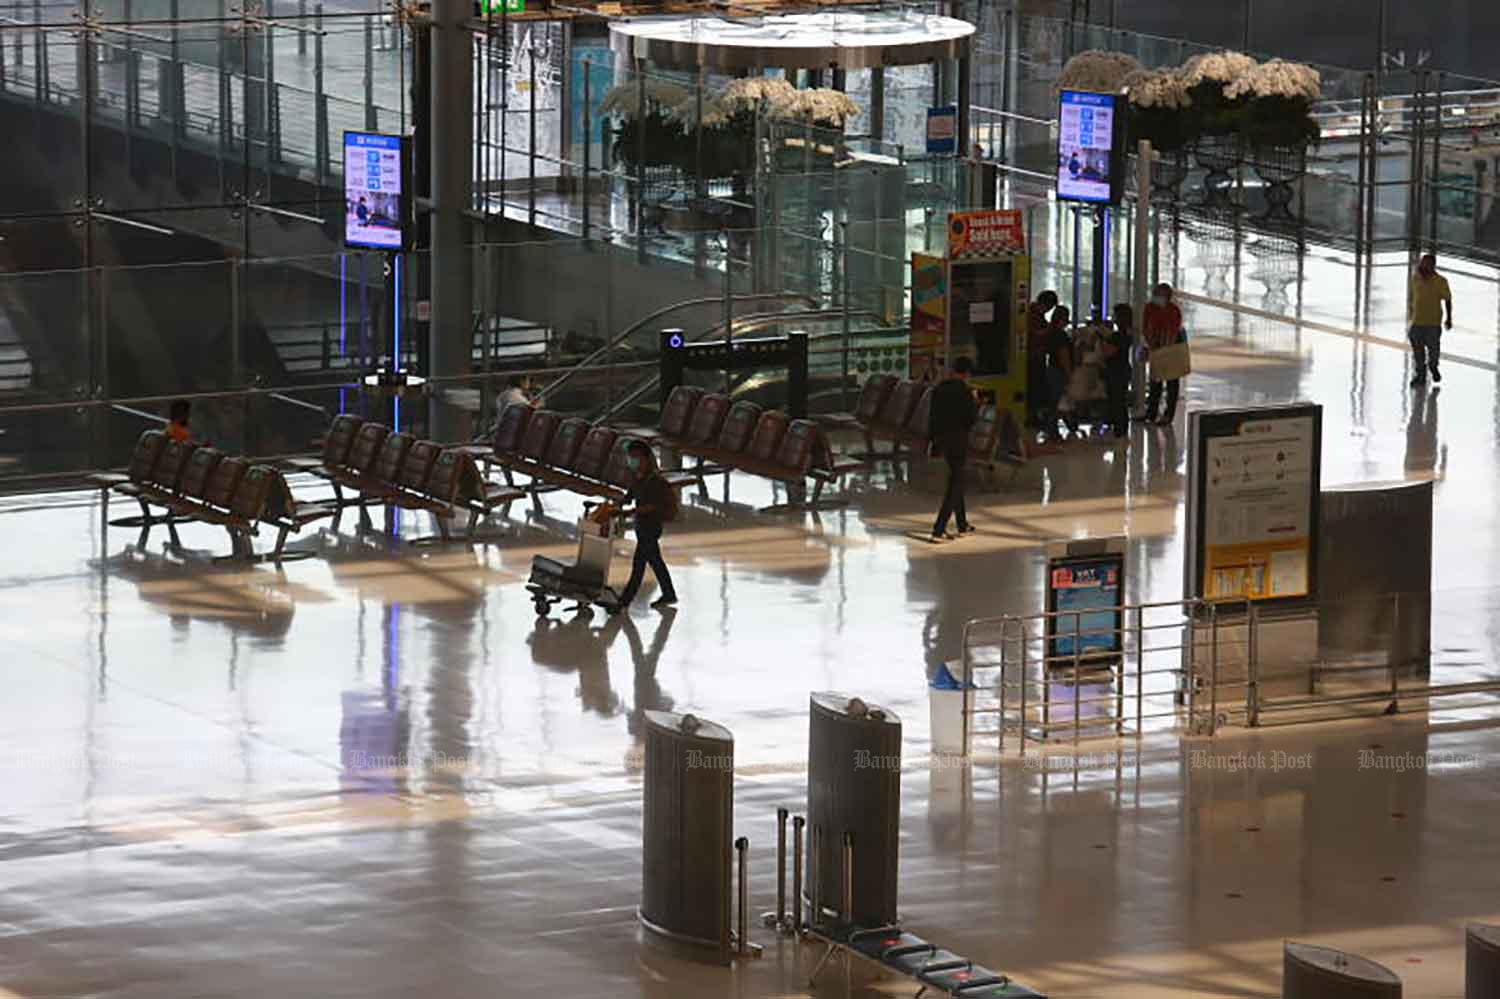 The passenger terminal at Suvarnabhumi airport stands silent, devoid of passengers. Travellers with the proper papers can now transit through the airport, with a maximum 12-hour stay. (Photo: Somchai Poomlard)